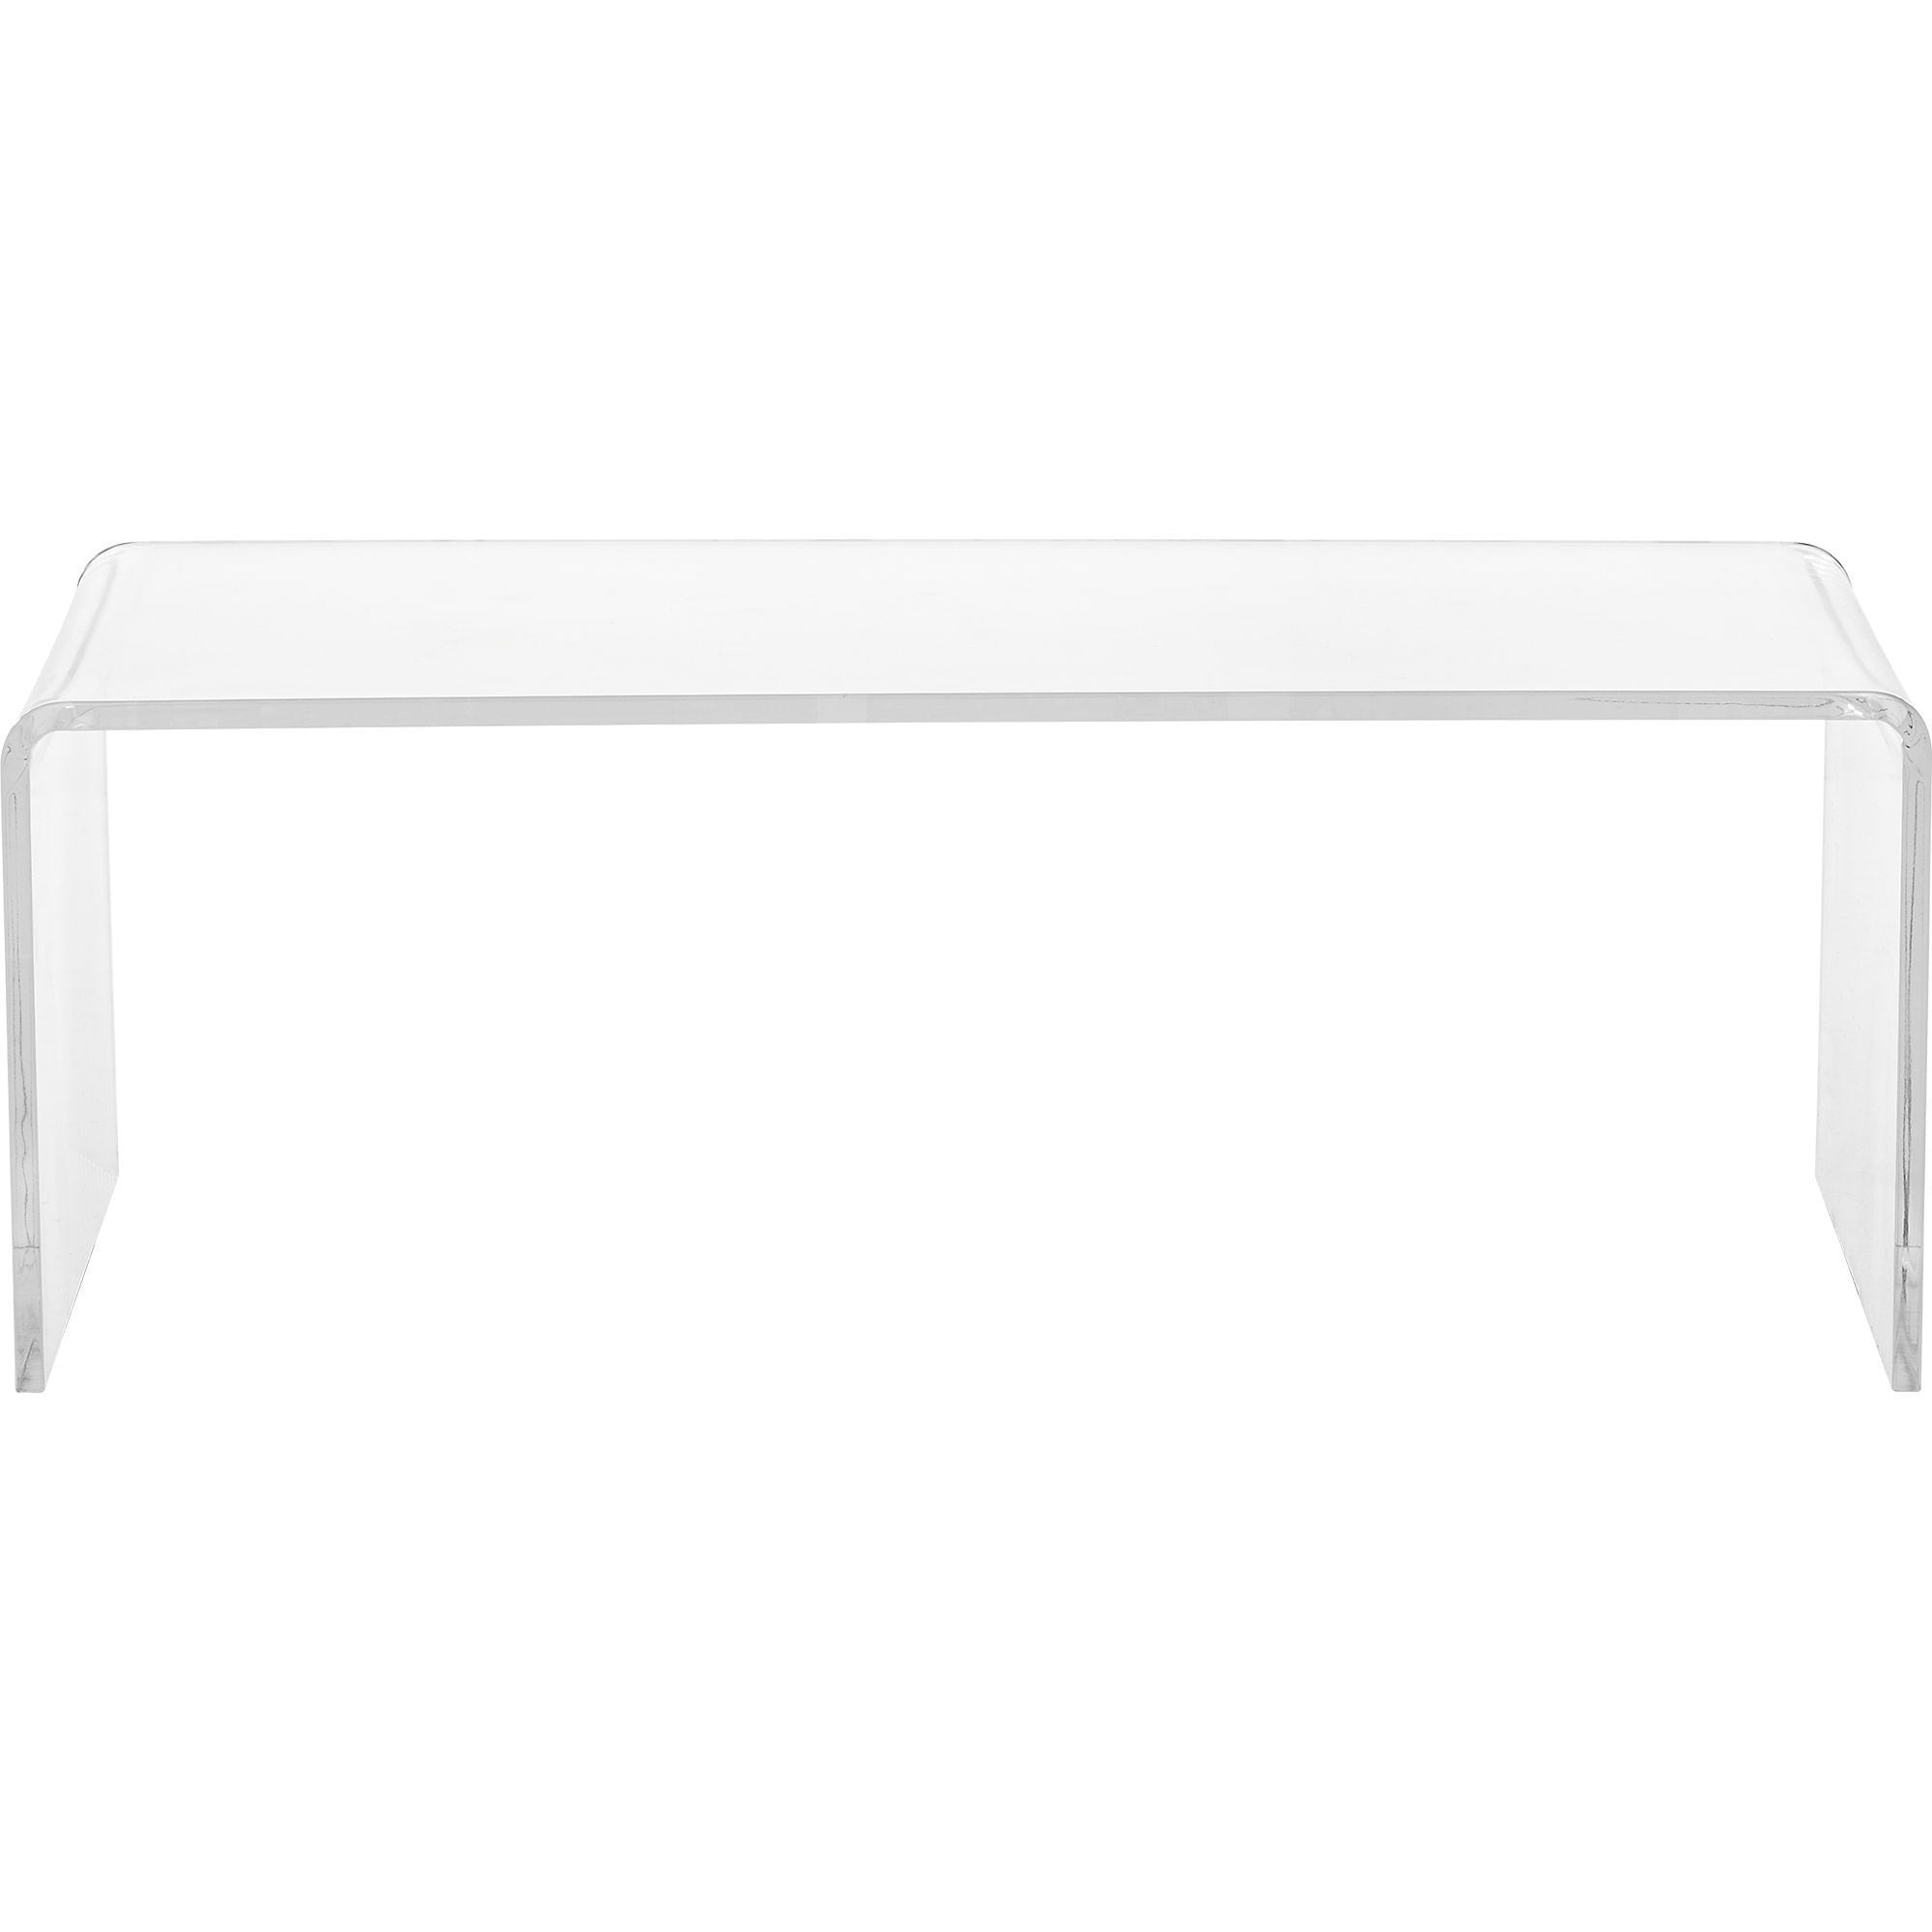 Modern Clear Acrylic Coffee Table On Sale Overstock 8407290